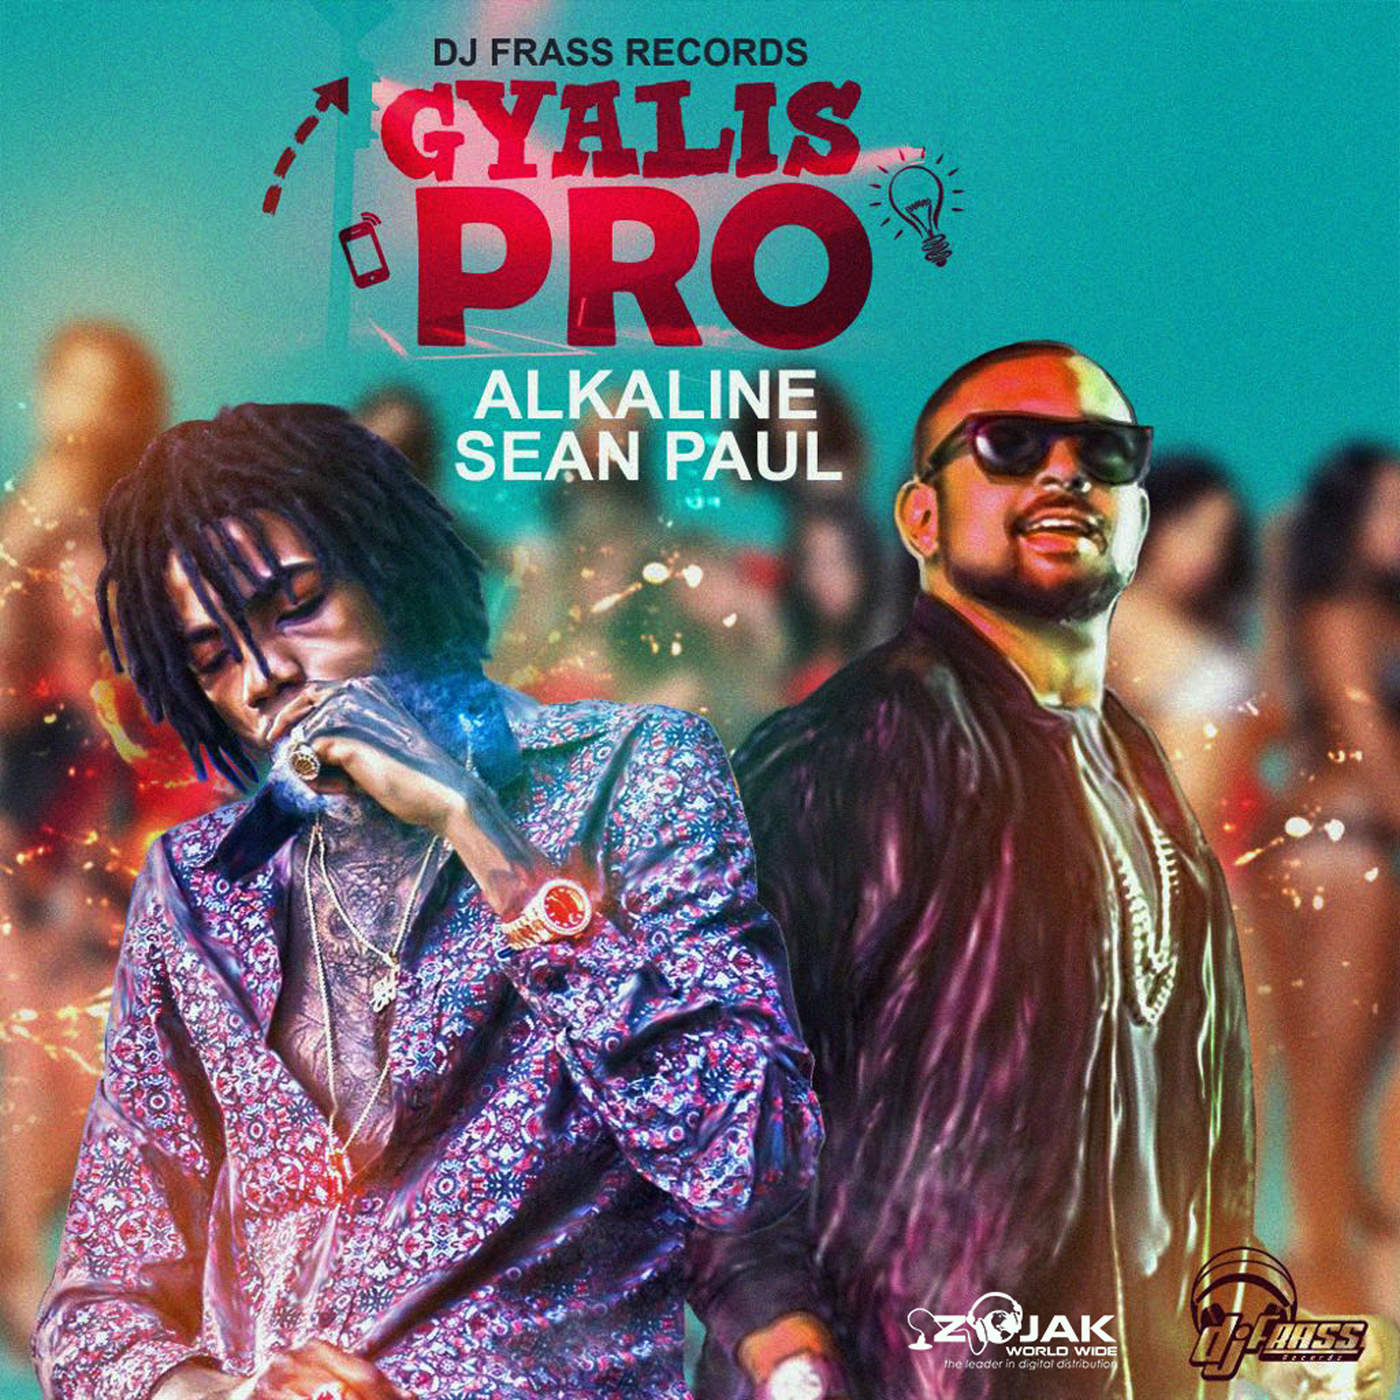 Alkaline & Sean Paul - Gyalis Pro - Single Cover